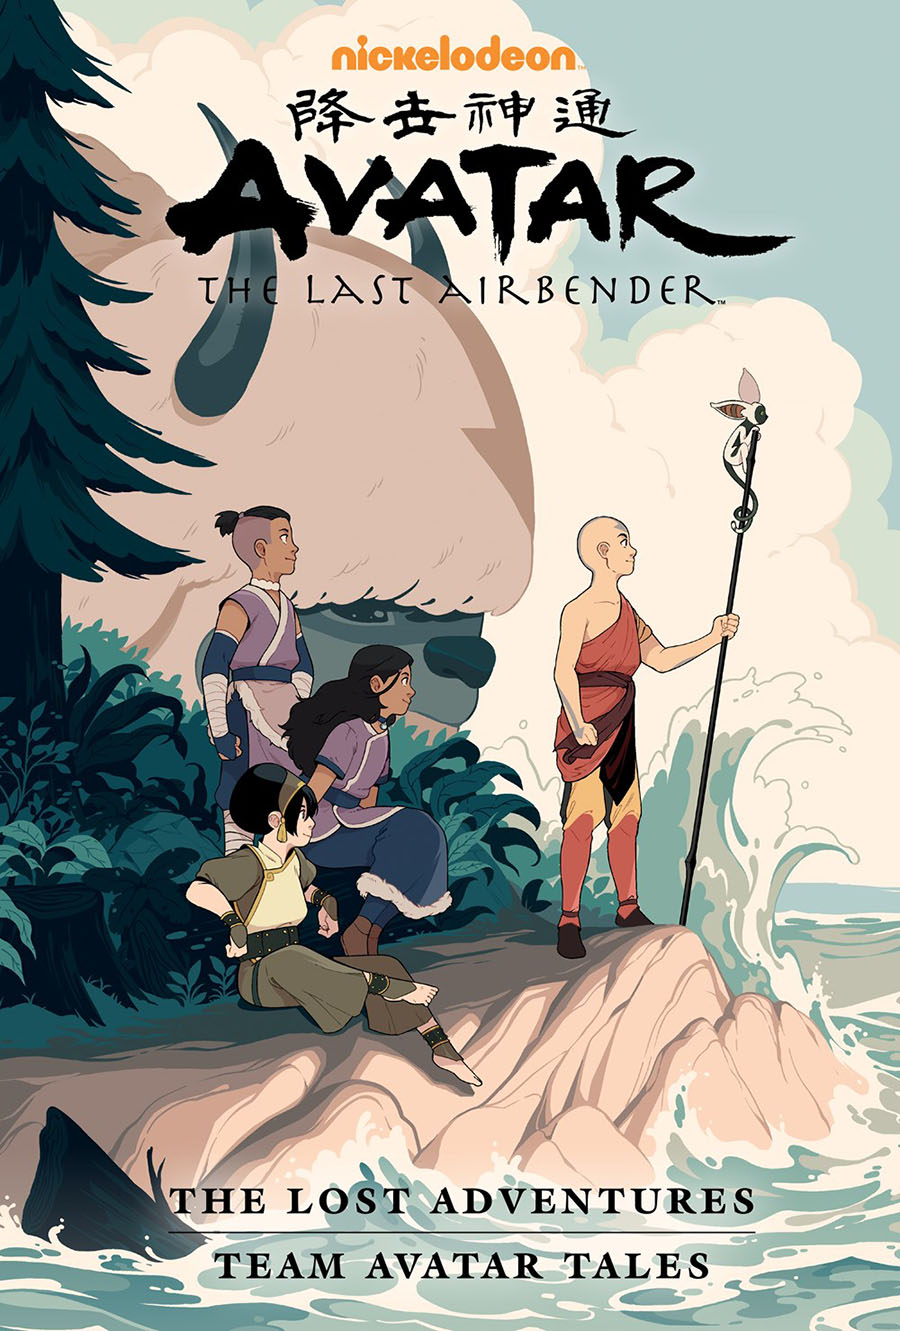 Avatar The Last Airbender Lost Adventures And Team Avatar Tales Library Edition HC